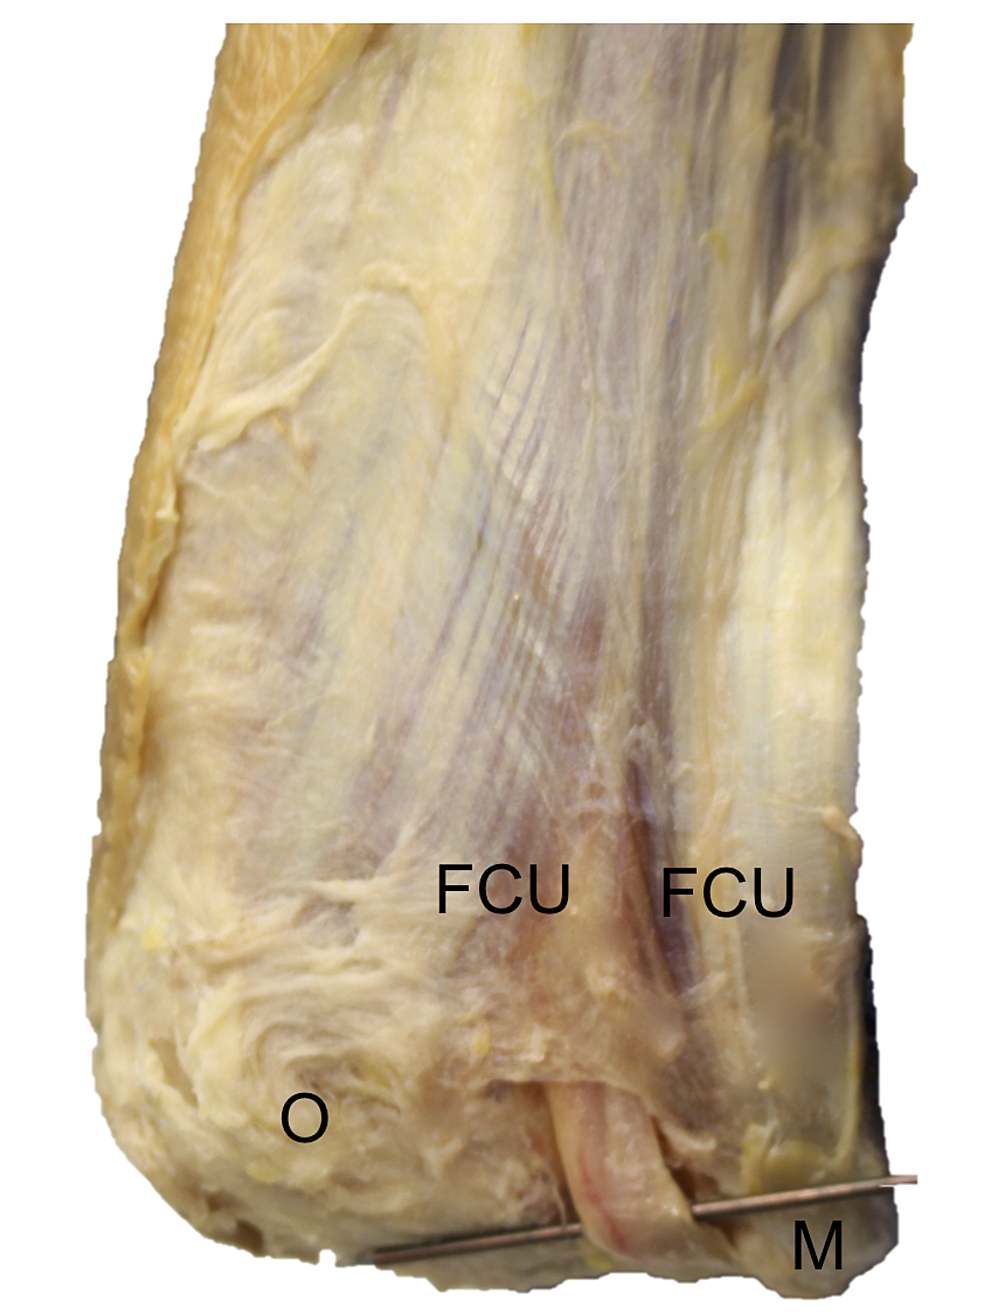 Cadaveric-dissection-of-the-right-posterior-elbow